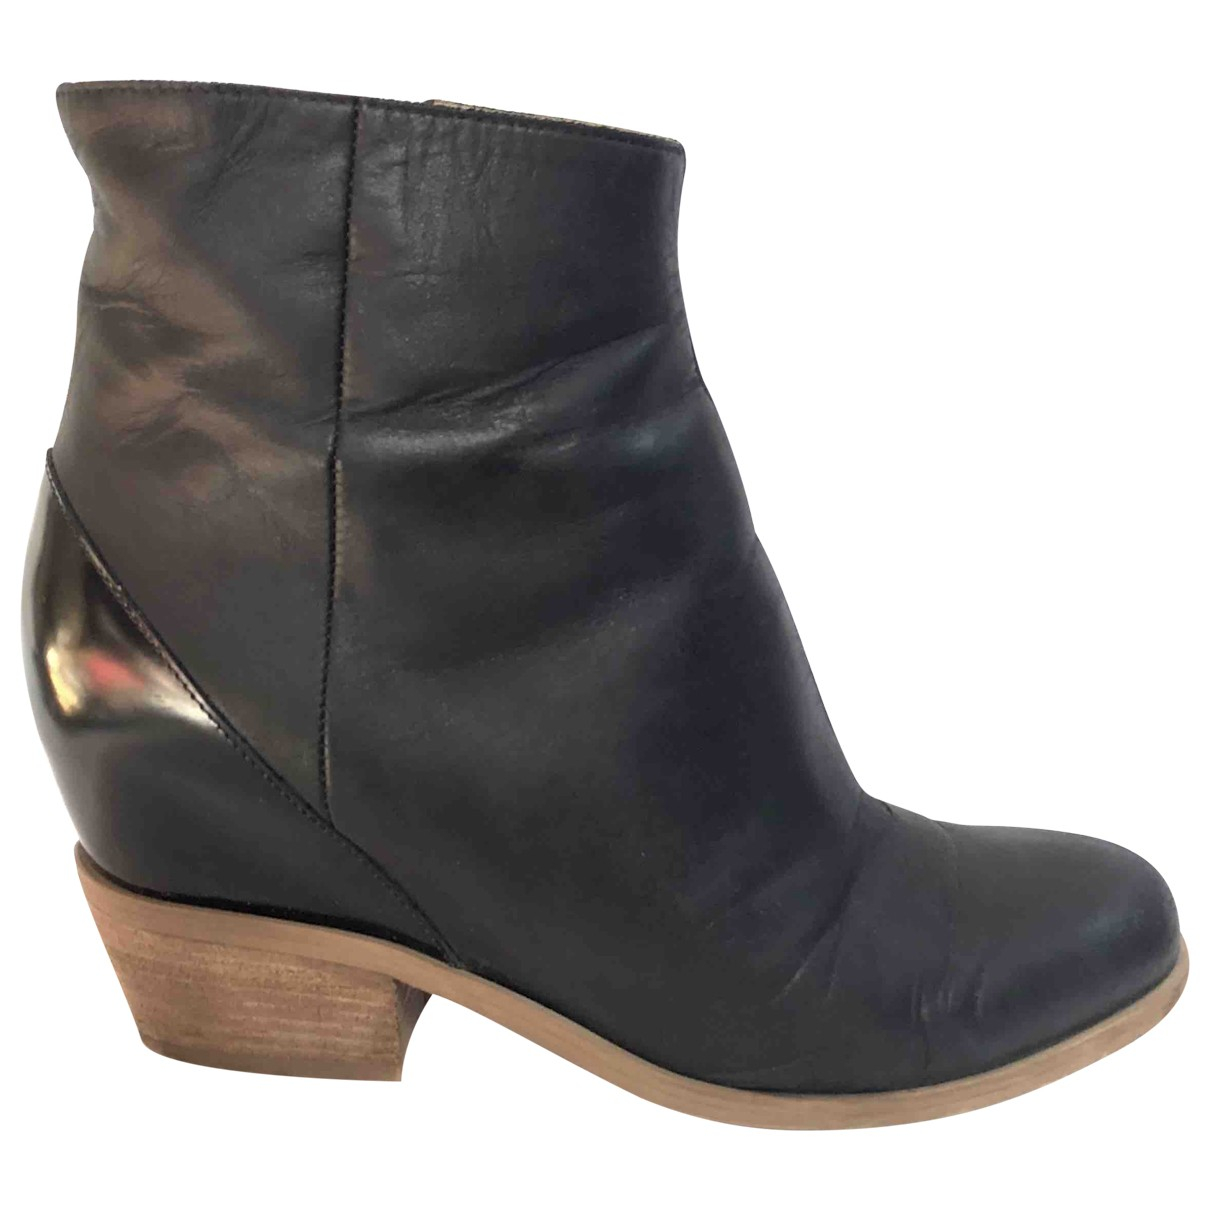 Mm6 N Black Leather Boots for Women 36.5 EU